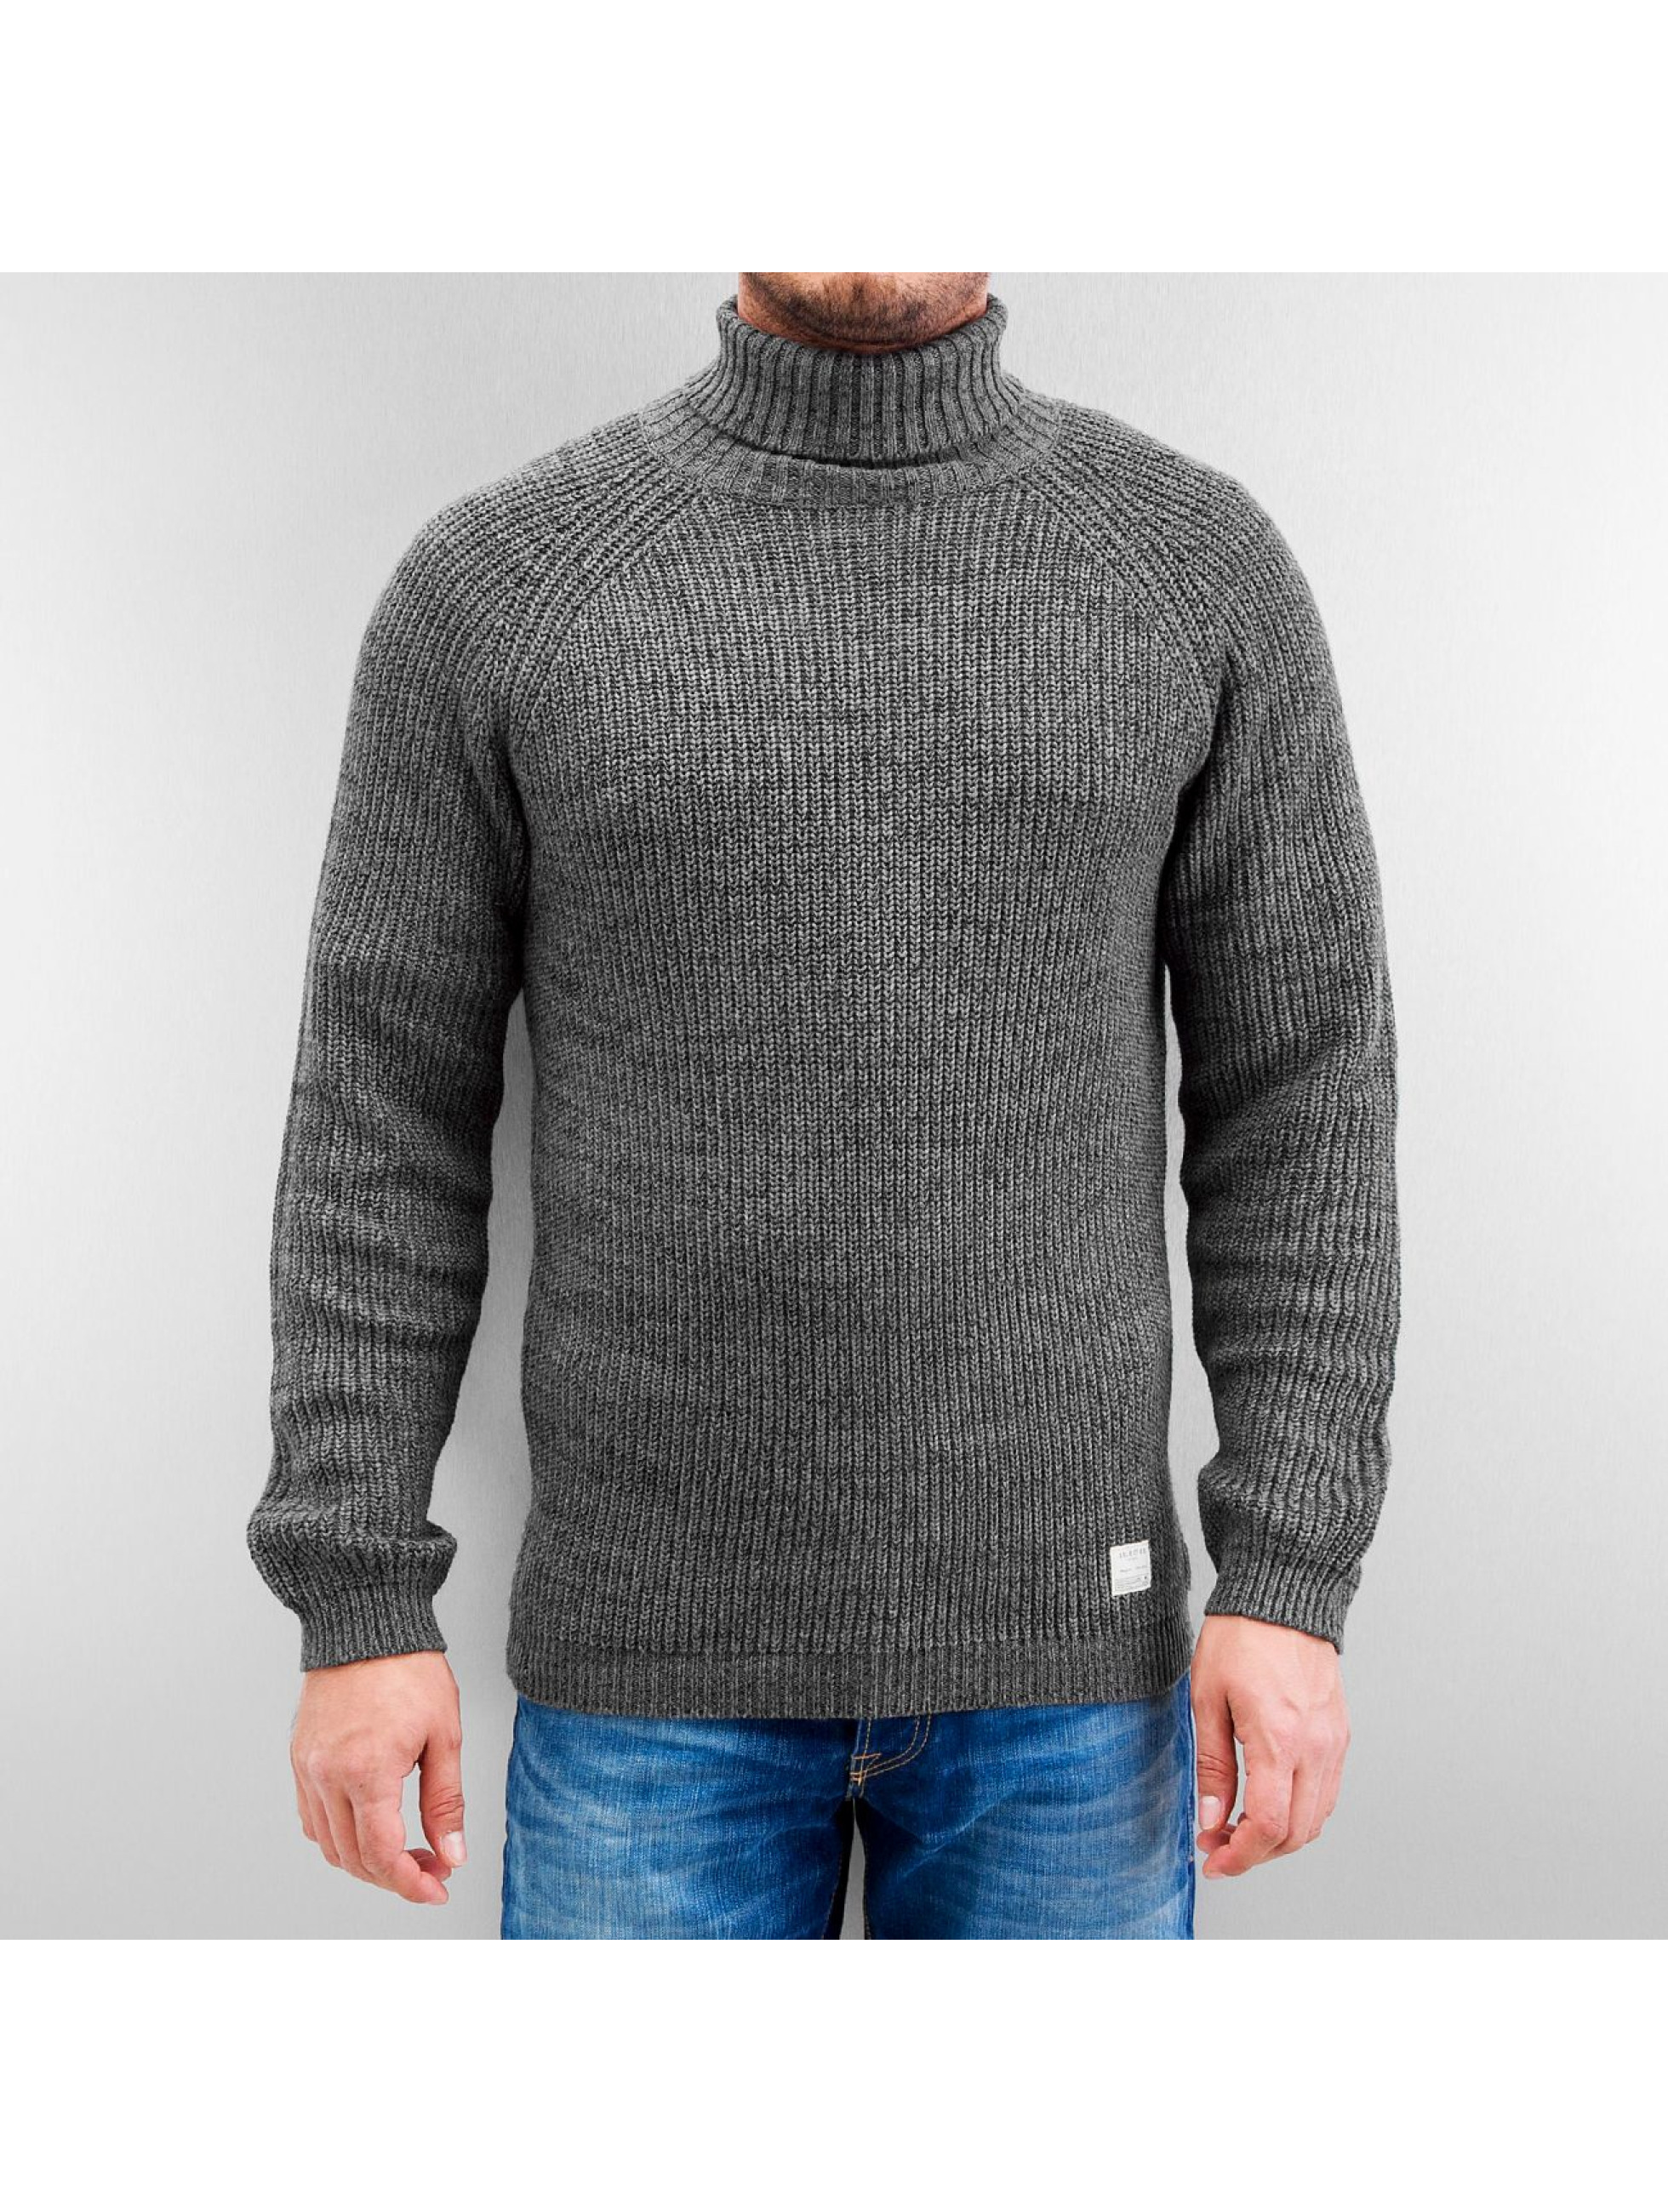 Selected Männer Pullover Brick Turtle Knit in grau